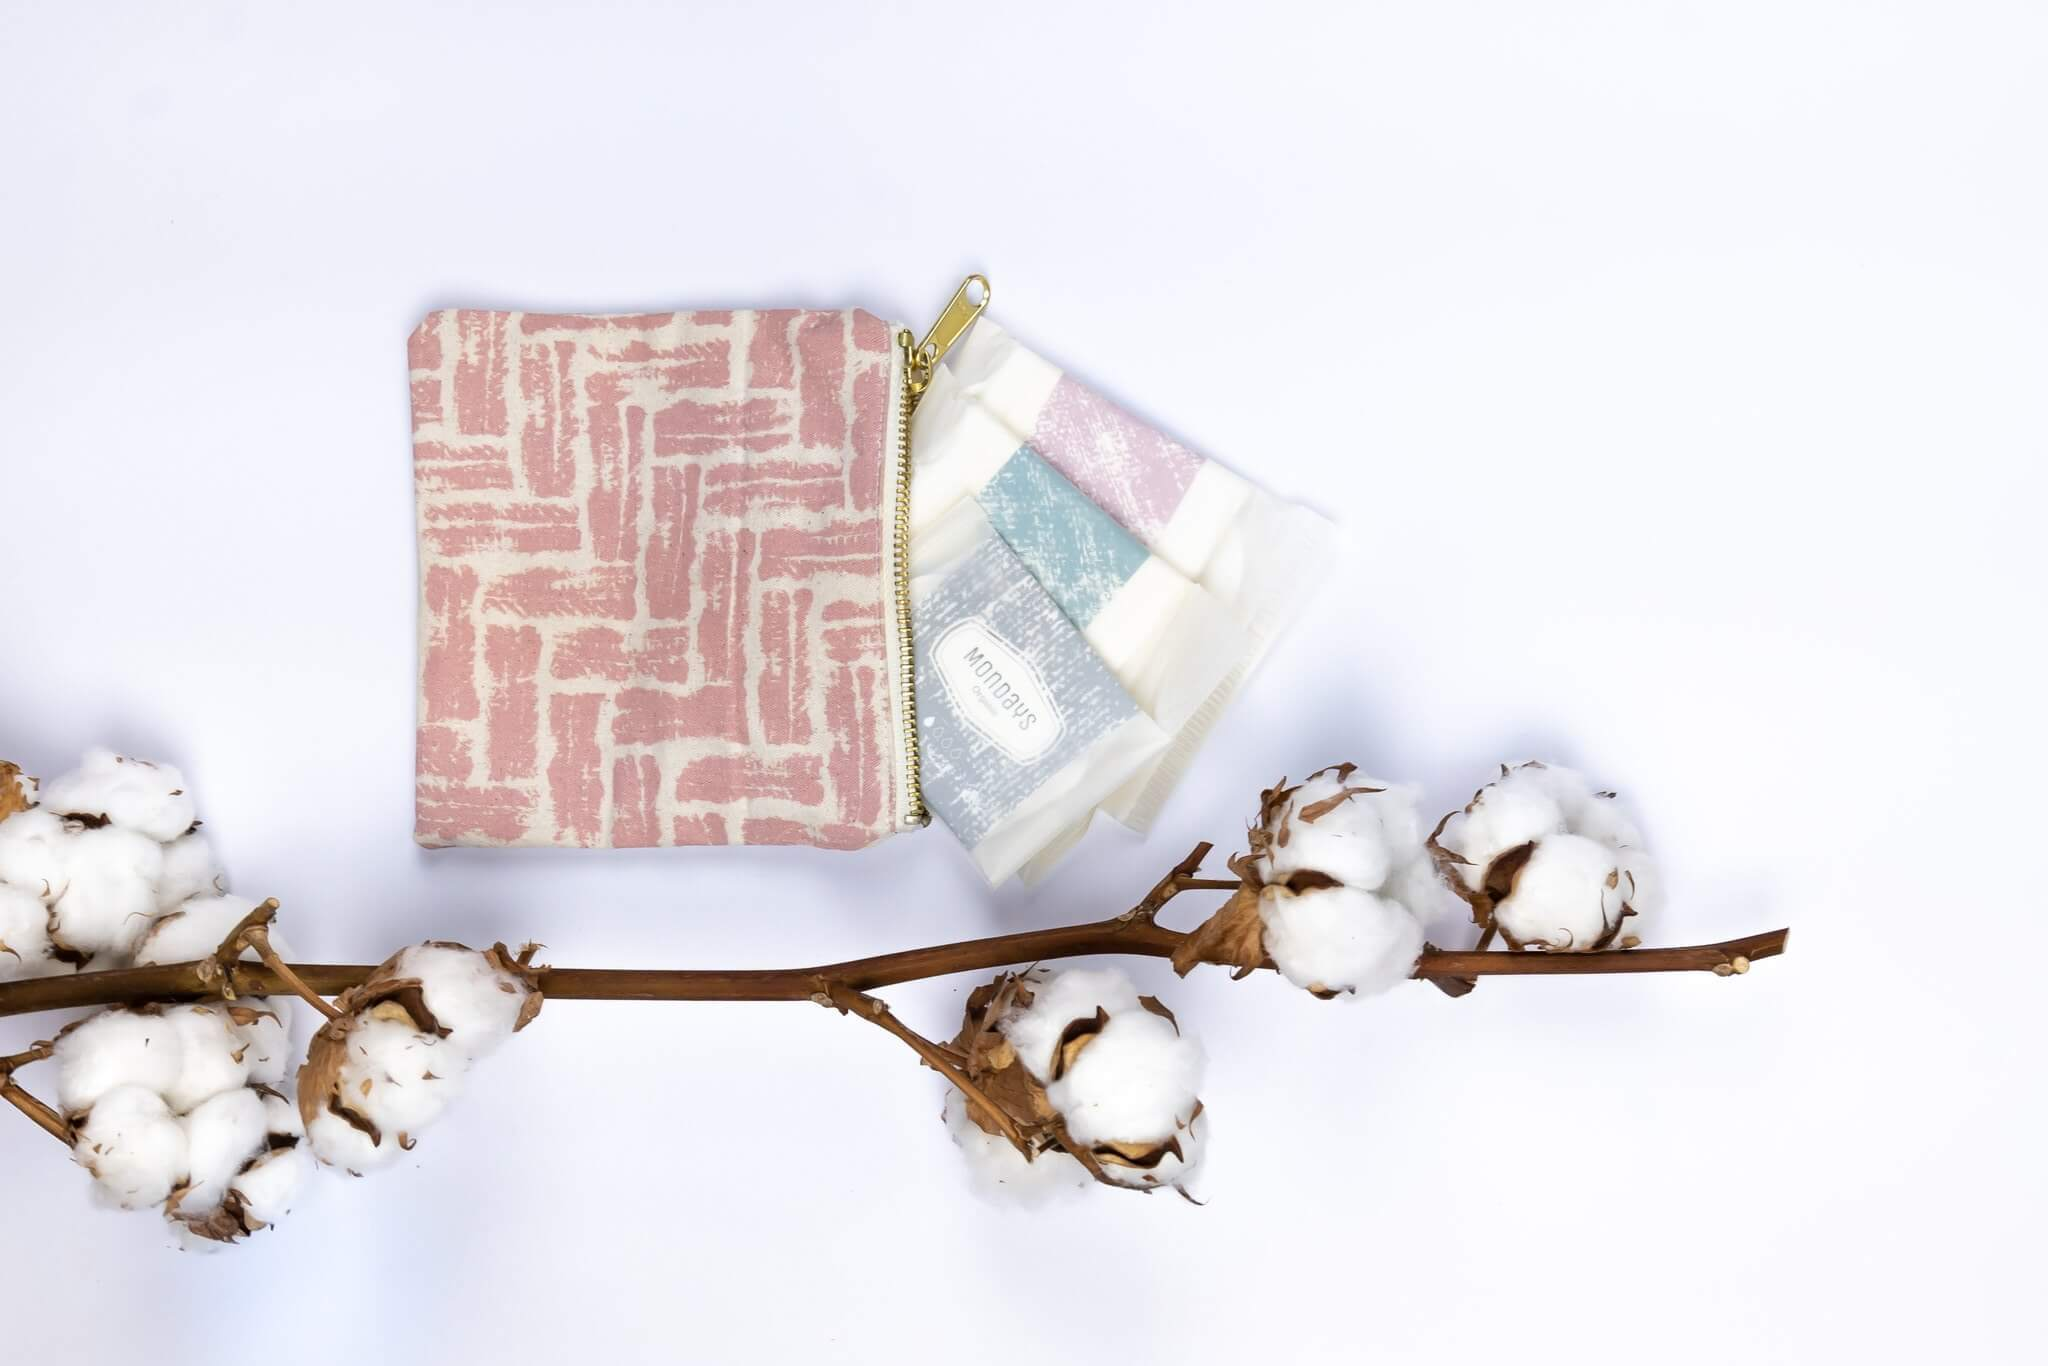 Organic Mondays eco friendly female hygiene products pictured against a white backdrop with a branch of cotton.